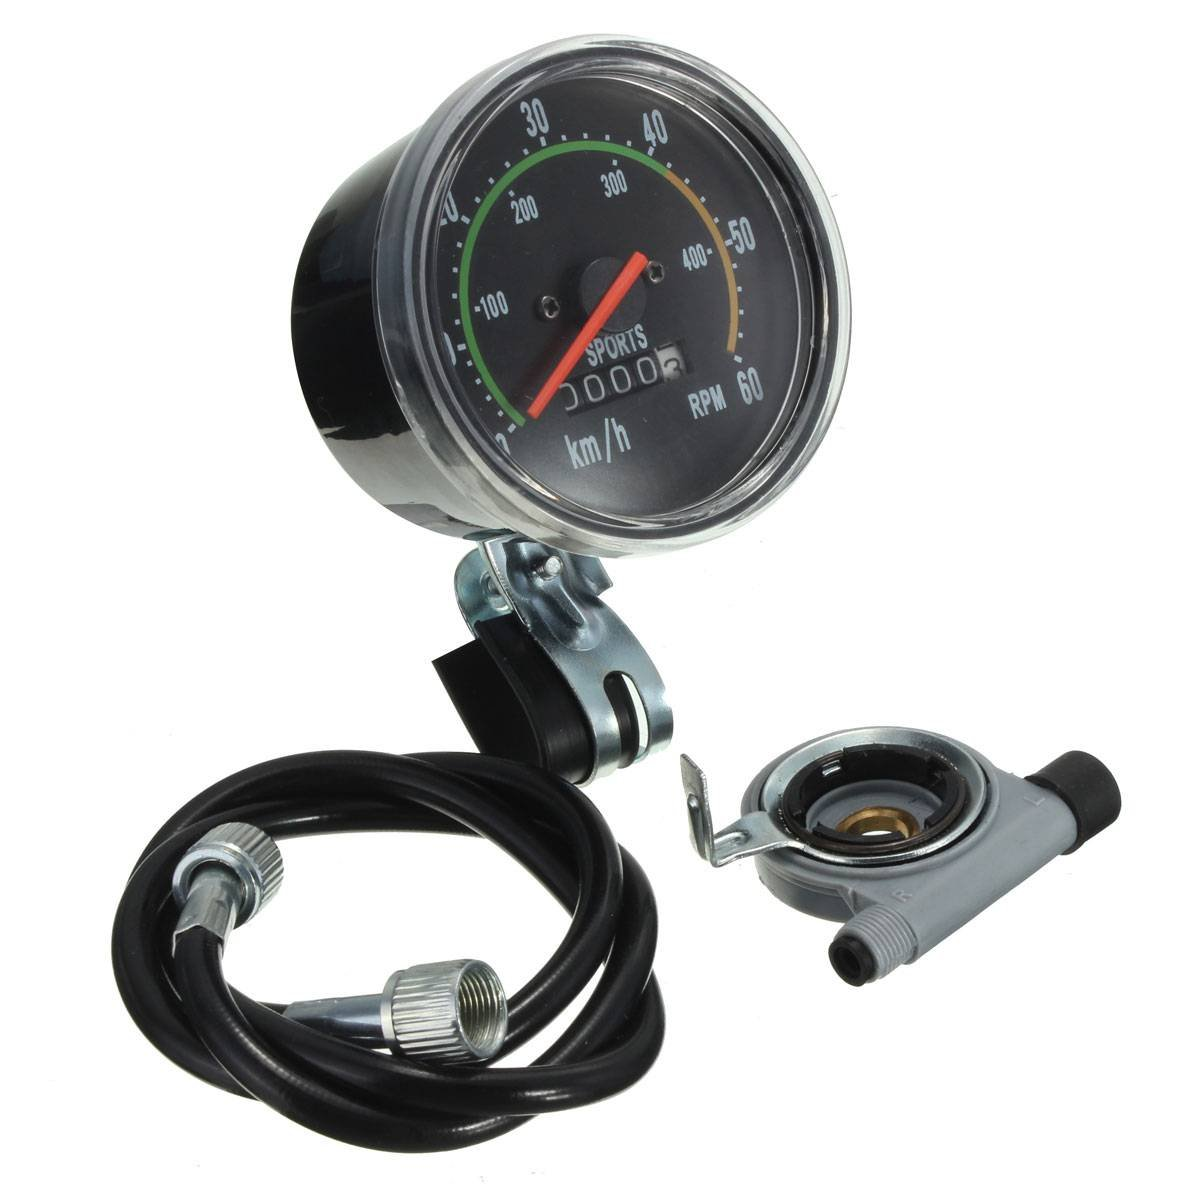 Amazon.com : OUTERDO Bike Speedometer Odometer Bicycle Stopwatch ...